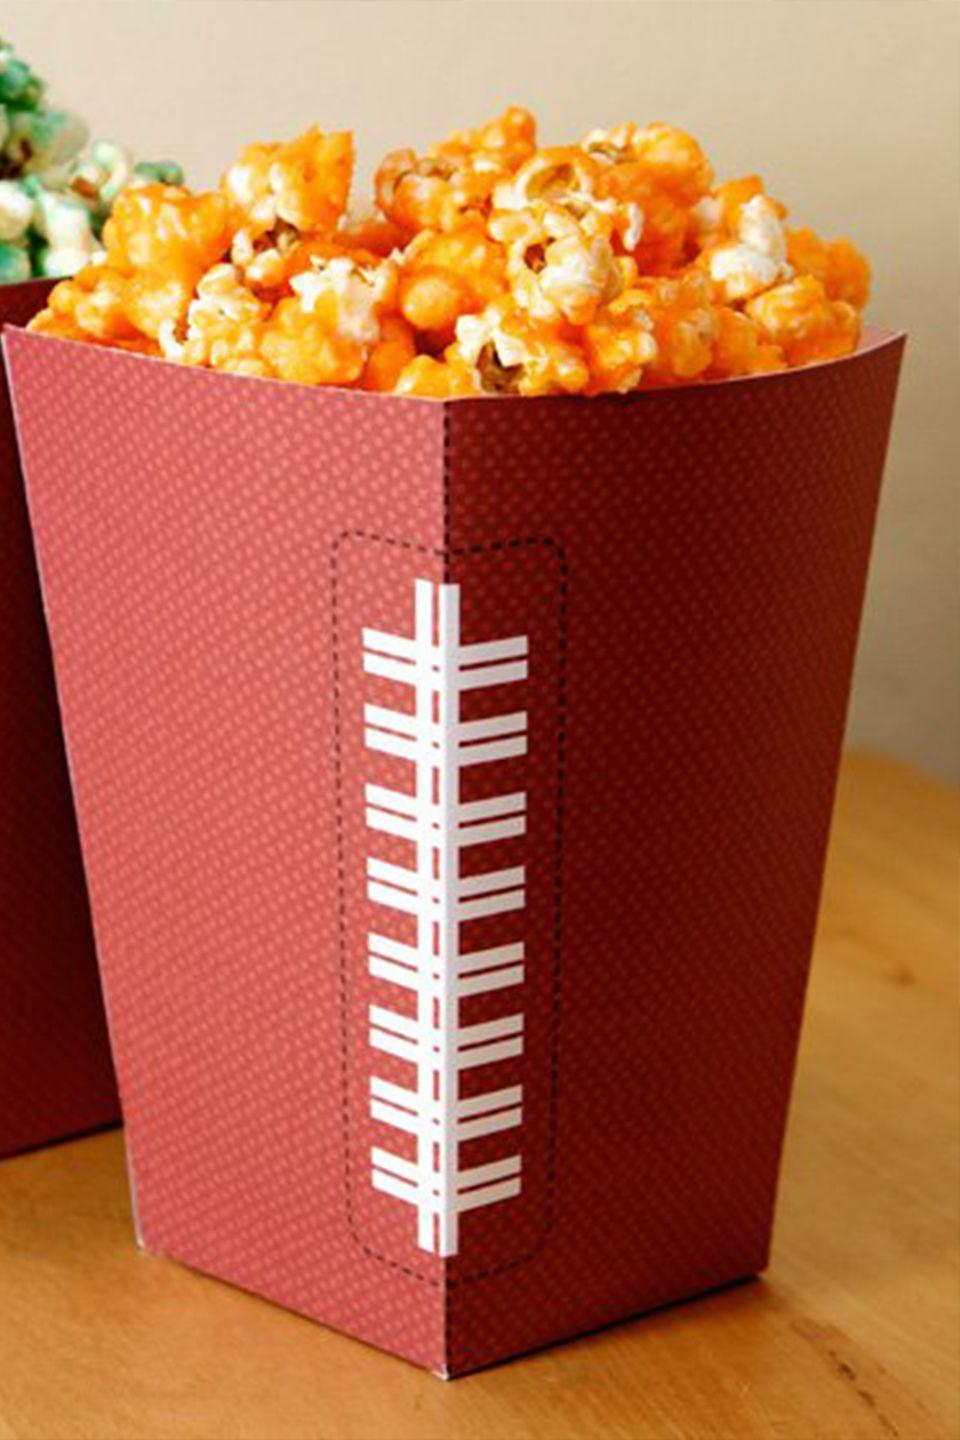 "<p>Add a fun twist to this simple snack with paper printables.<br></p><p><em><a href=""http://blog.hwtm.com/2012/01/free-football-party-printables-homemade-stadium-snack-recipes/"" rel=""nofollow noopener"" target=""_blank"" data-ylk=""slk:Get the tutorial and printables at Hostess With the Mostess »"" class=""link rapid-noclick-resp"">Get the tutorial and printables at Hostess With the Mostess »</a></em> </p>"